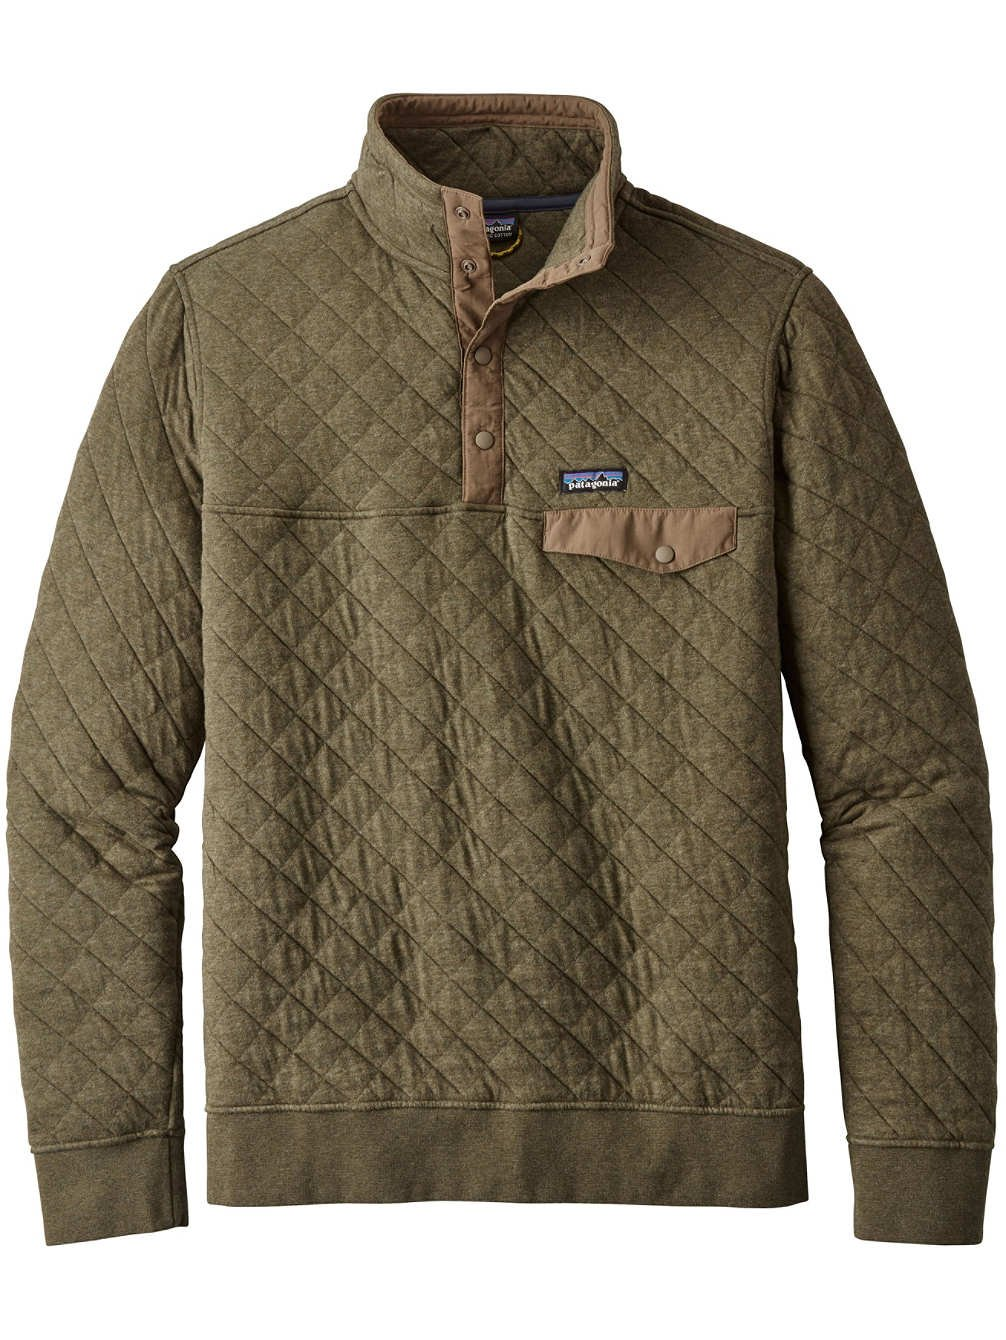 Patagonia Men's Cotton Quilt Snap-T Pullover - Industrial Green - Small